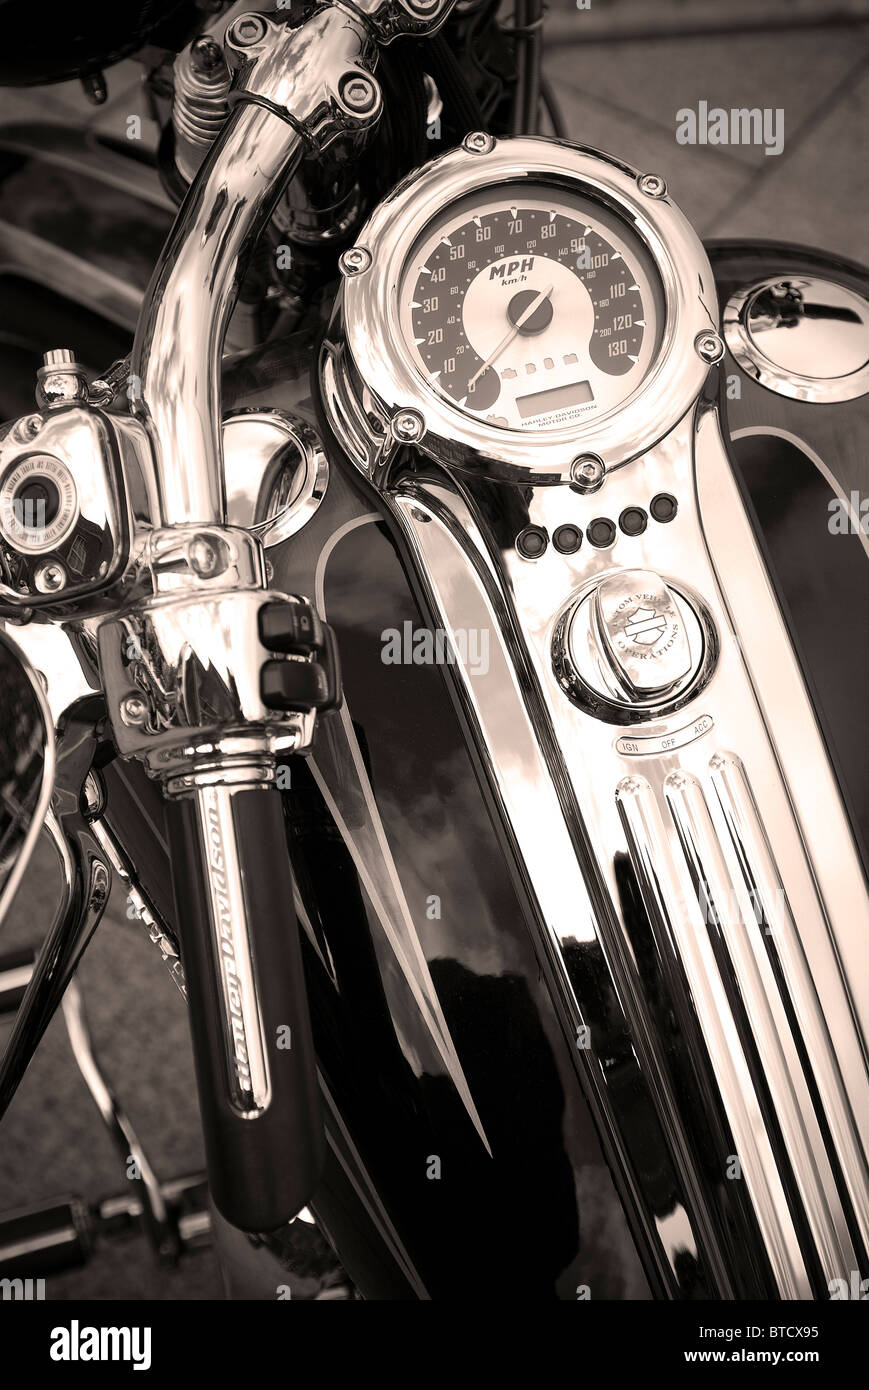 close up of a harley davidson bike - Stock Image